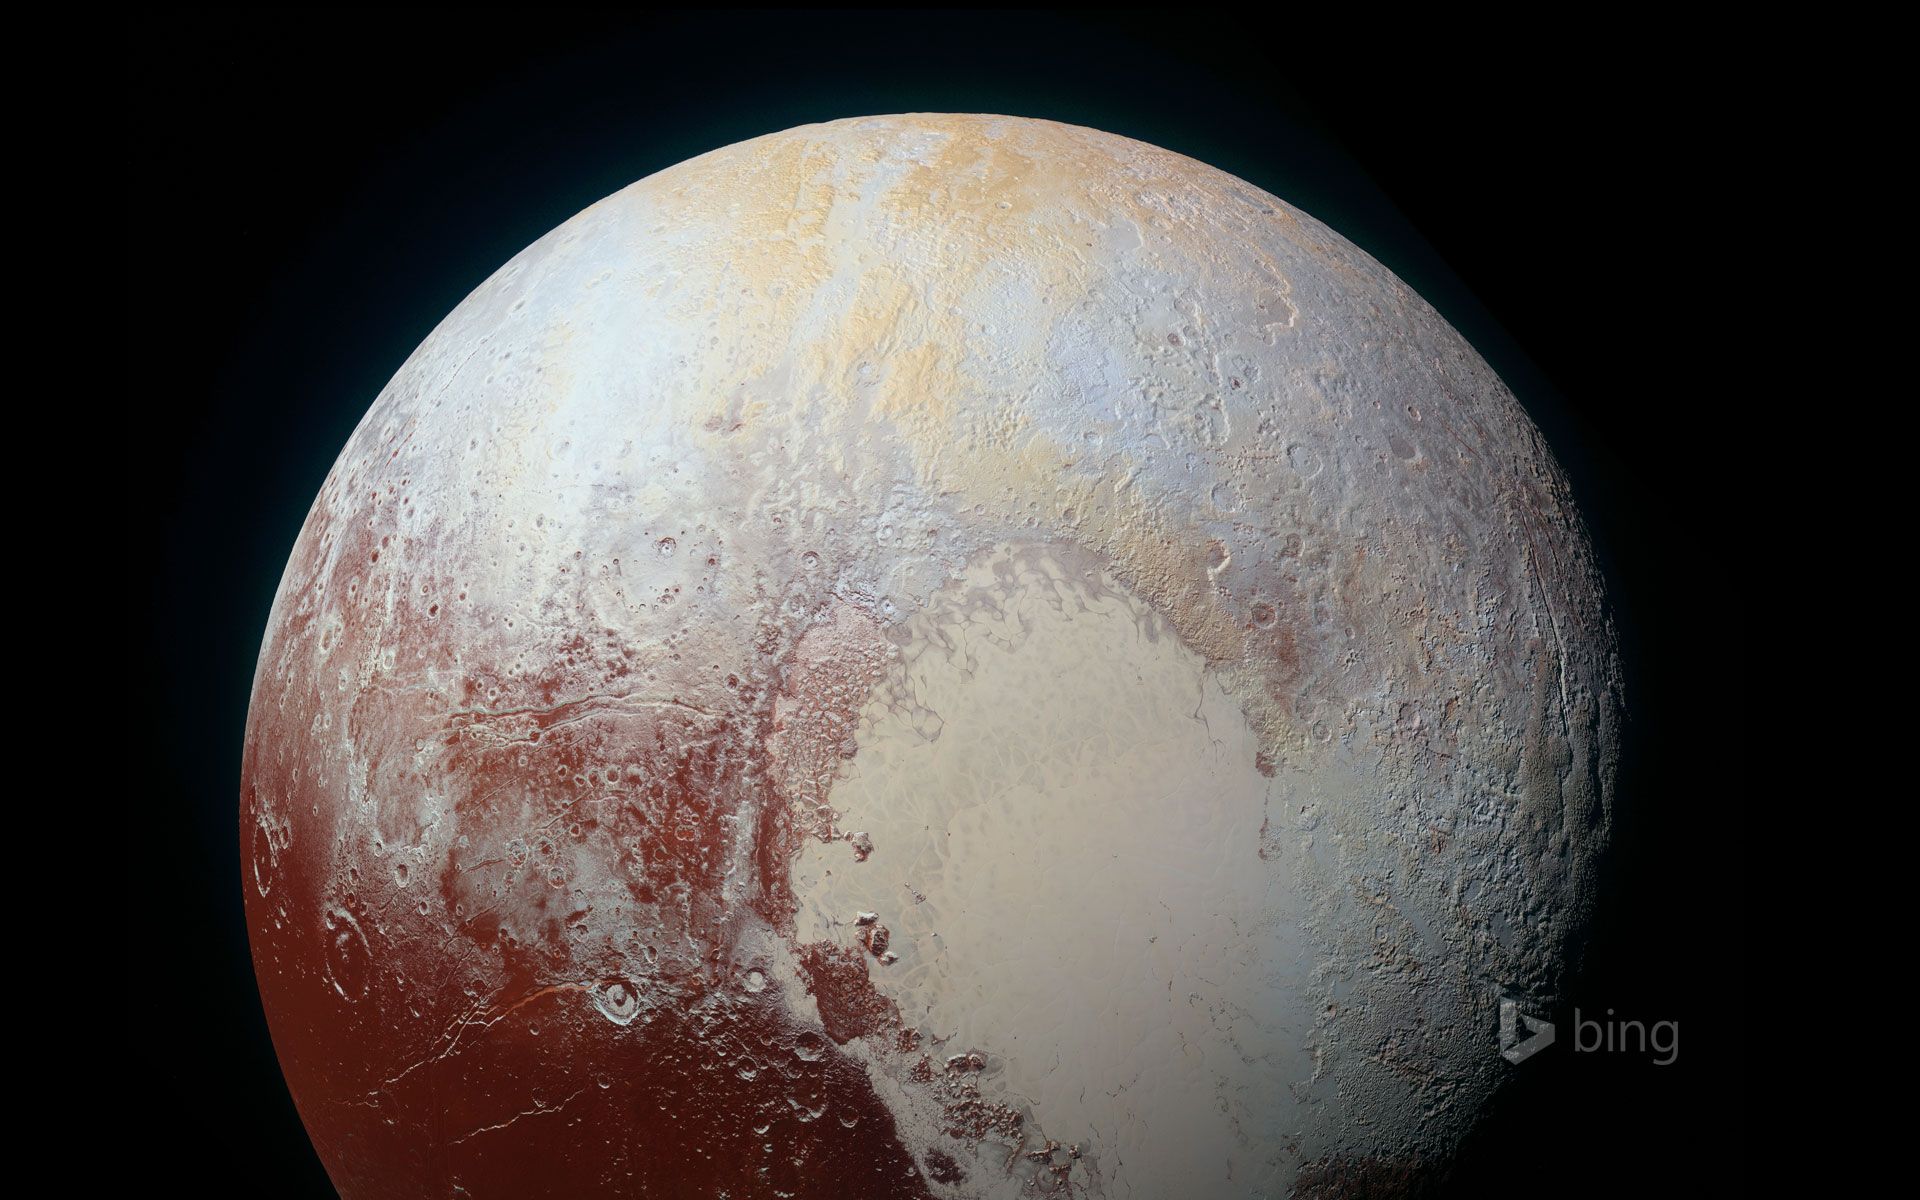 A colour-enhanced photo of Pluto, taken by NASA's New Horizons spacecraft